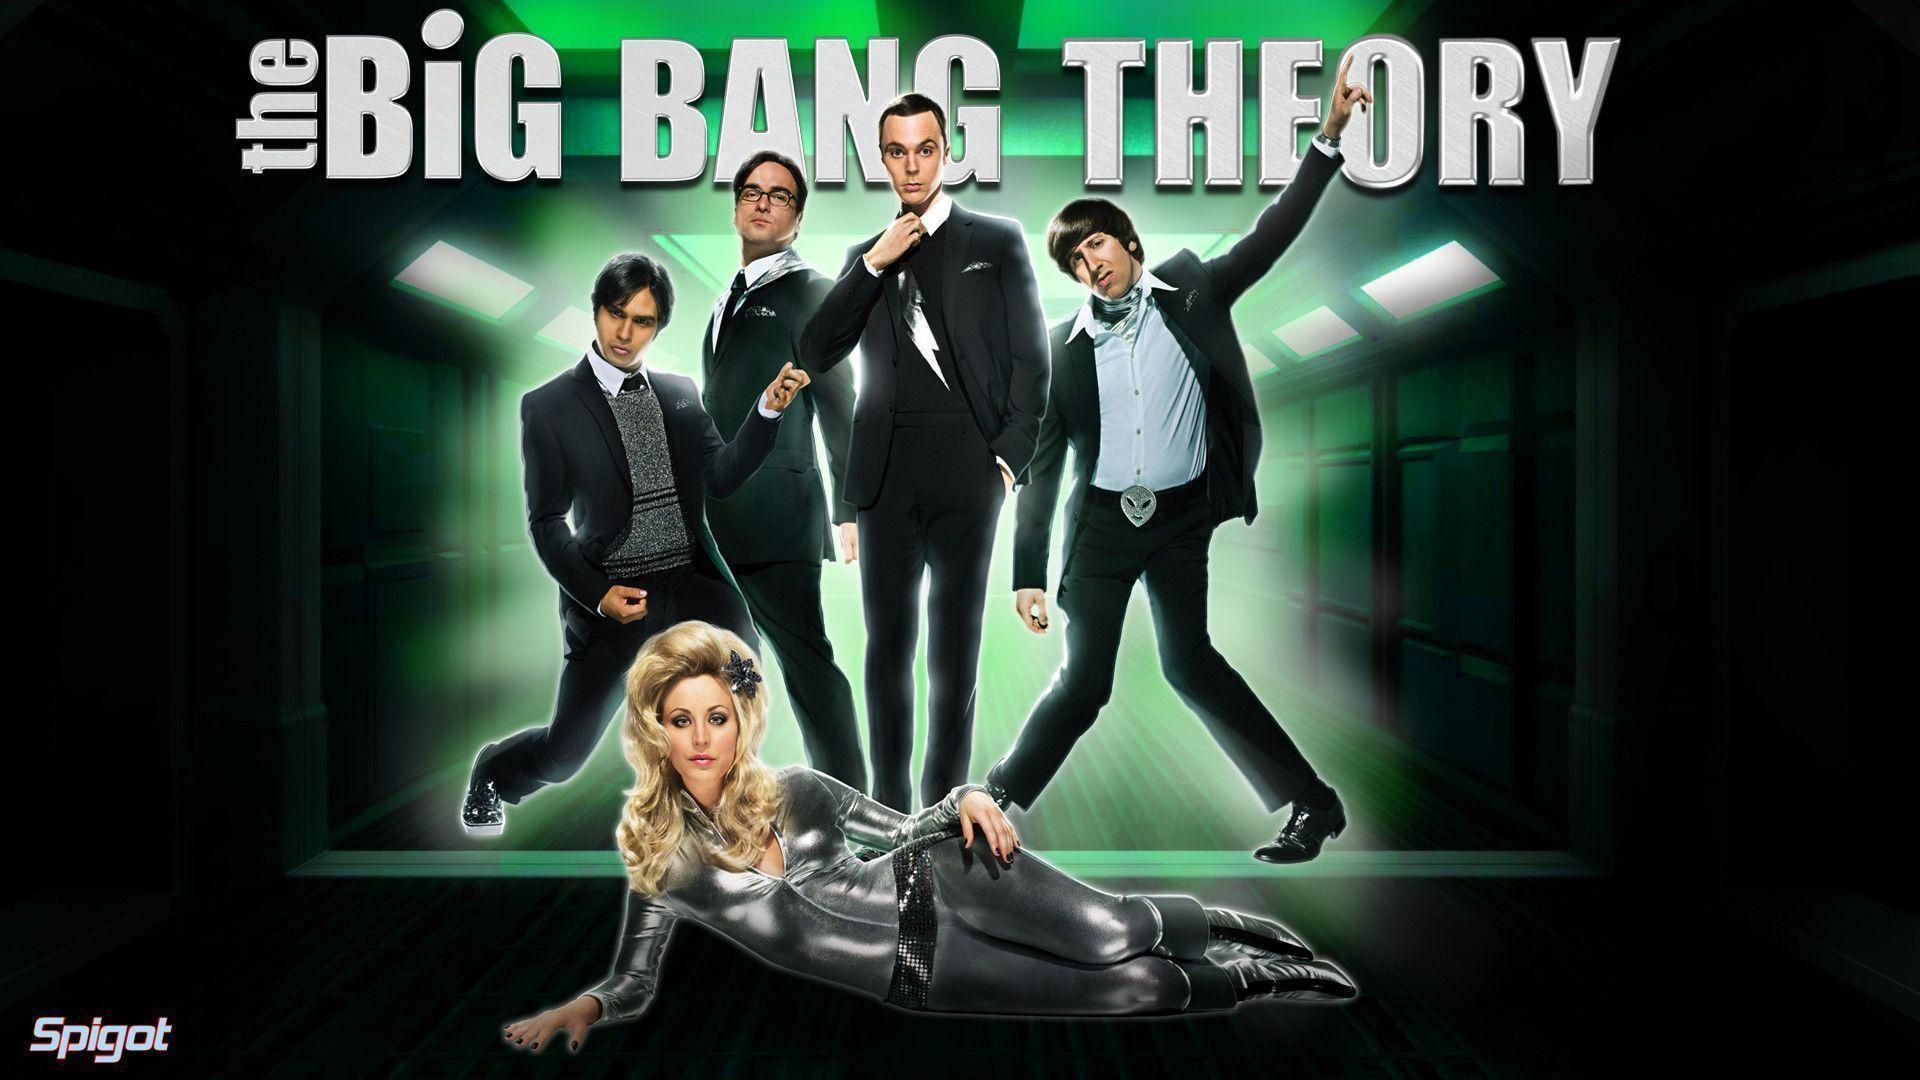 The Big Bang Theory Wallpaper | George Spigot's Blog